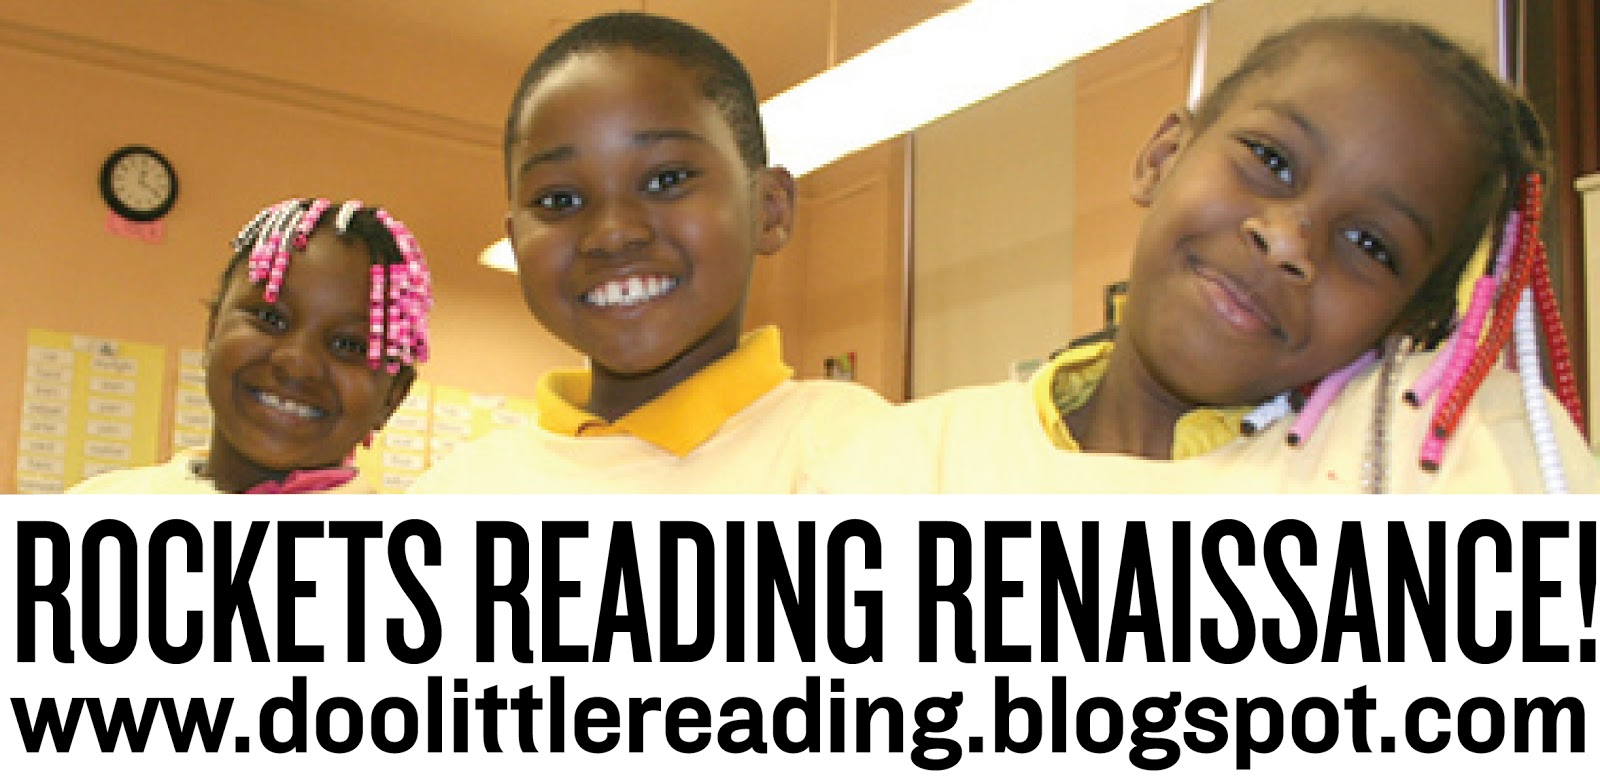 phyllis hunter on reading rockets reaction Phyllis c hunter is an internationally known literacy expert who has served as an advisor to the president of the united states and the secretary of education she says that reading is the new civil right.